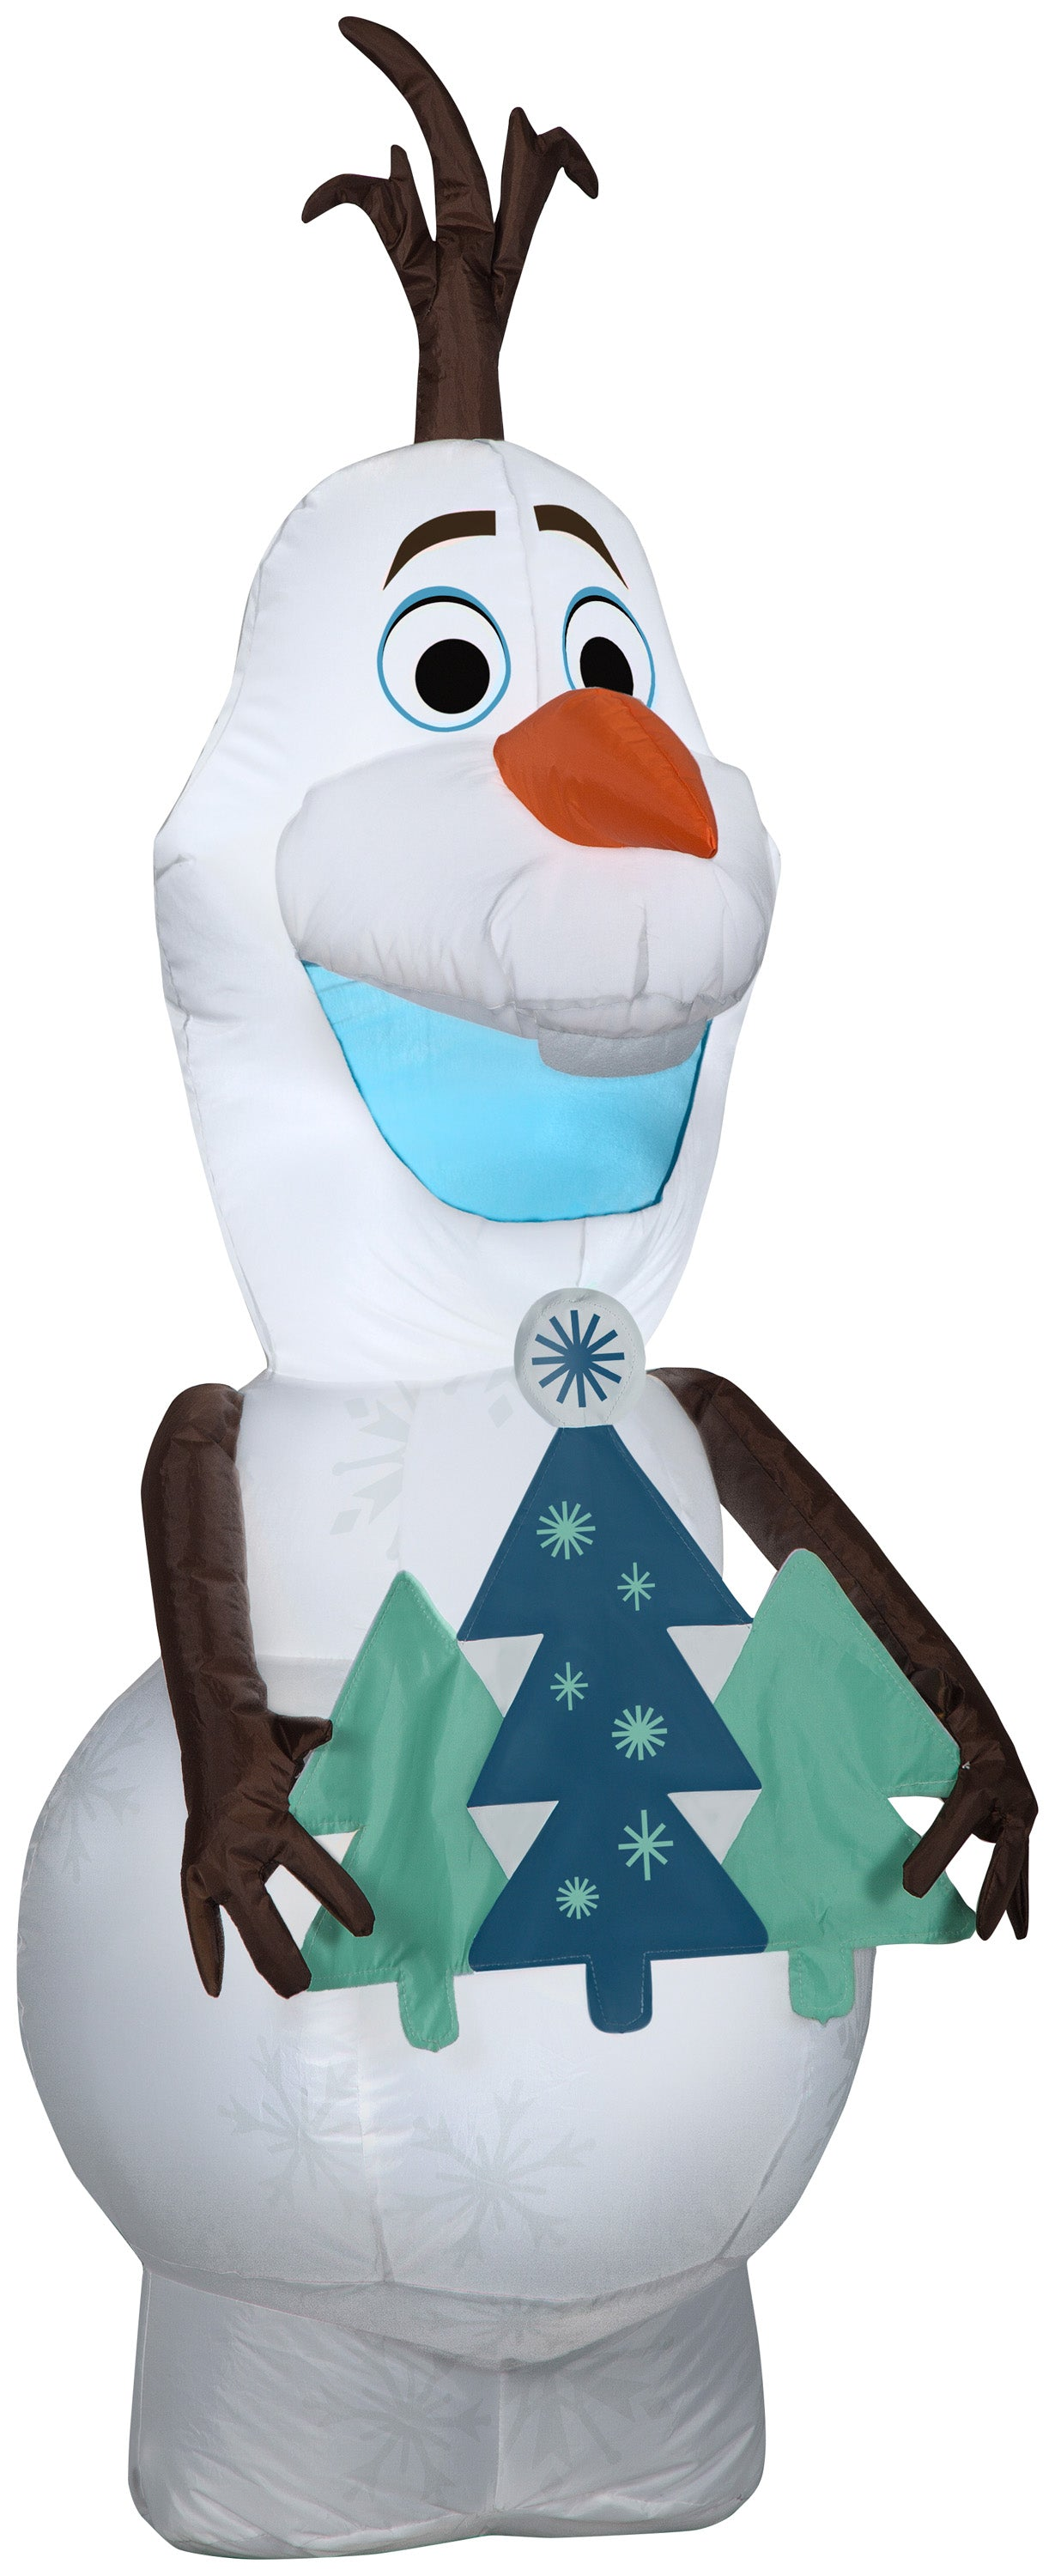 Gemmy 4ft Airblown Inflatable Olaf Holding Christmas Tree Disney